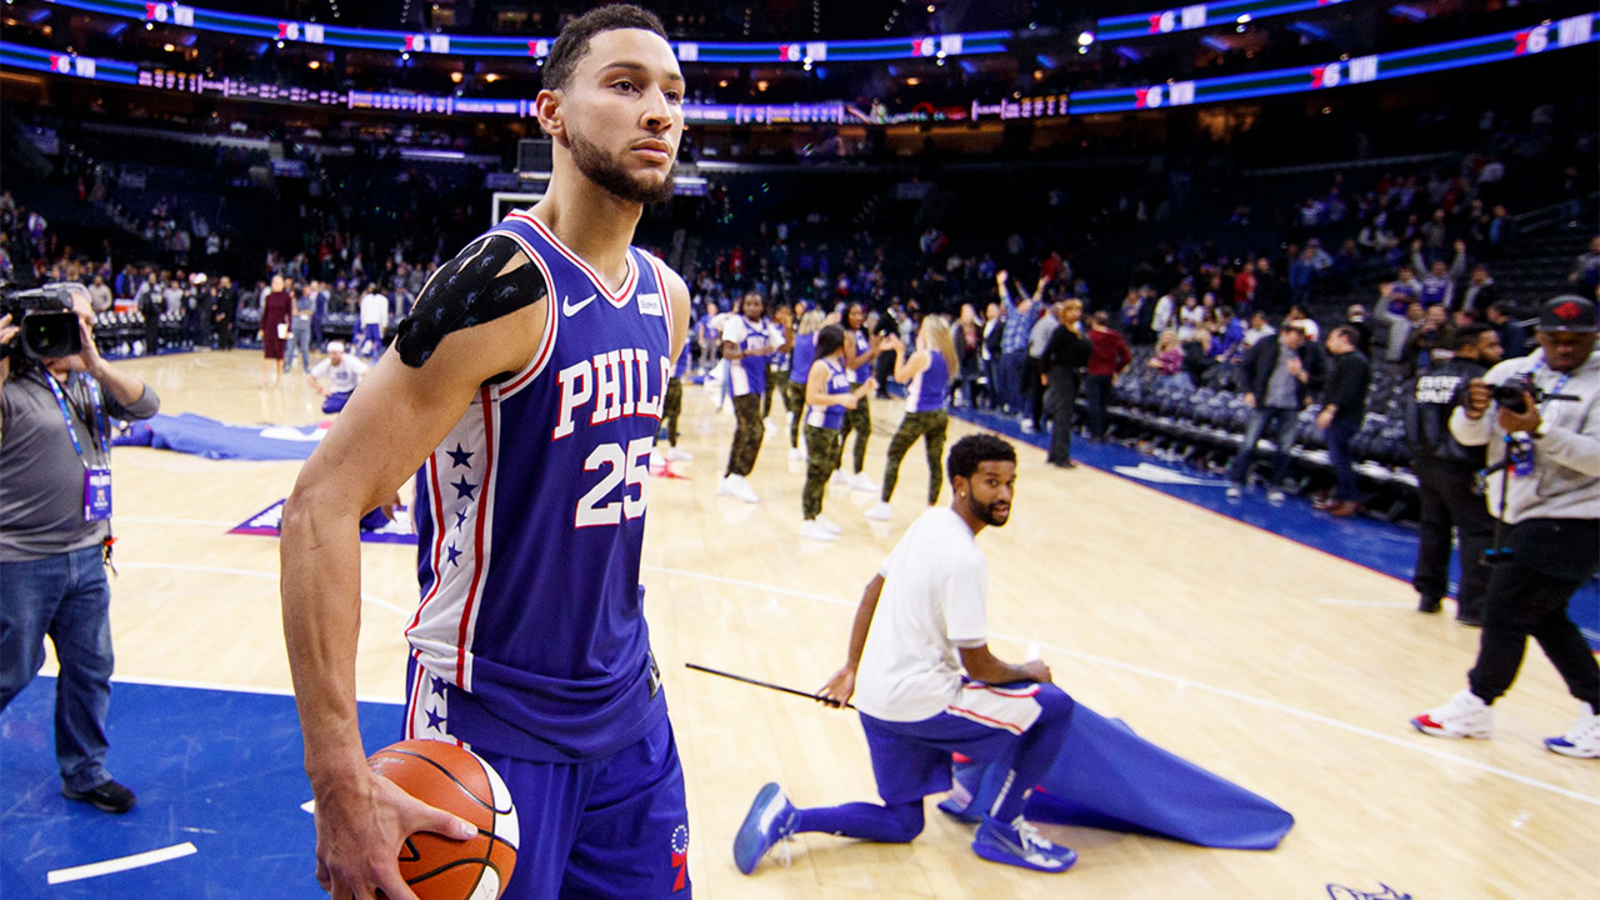 WATCH: Ben Simmons hits first career NBA 3-pointer in 76ers' win